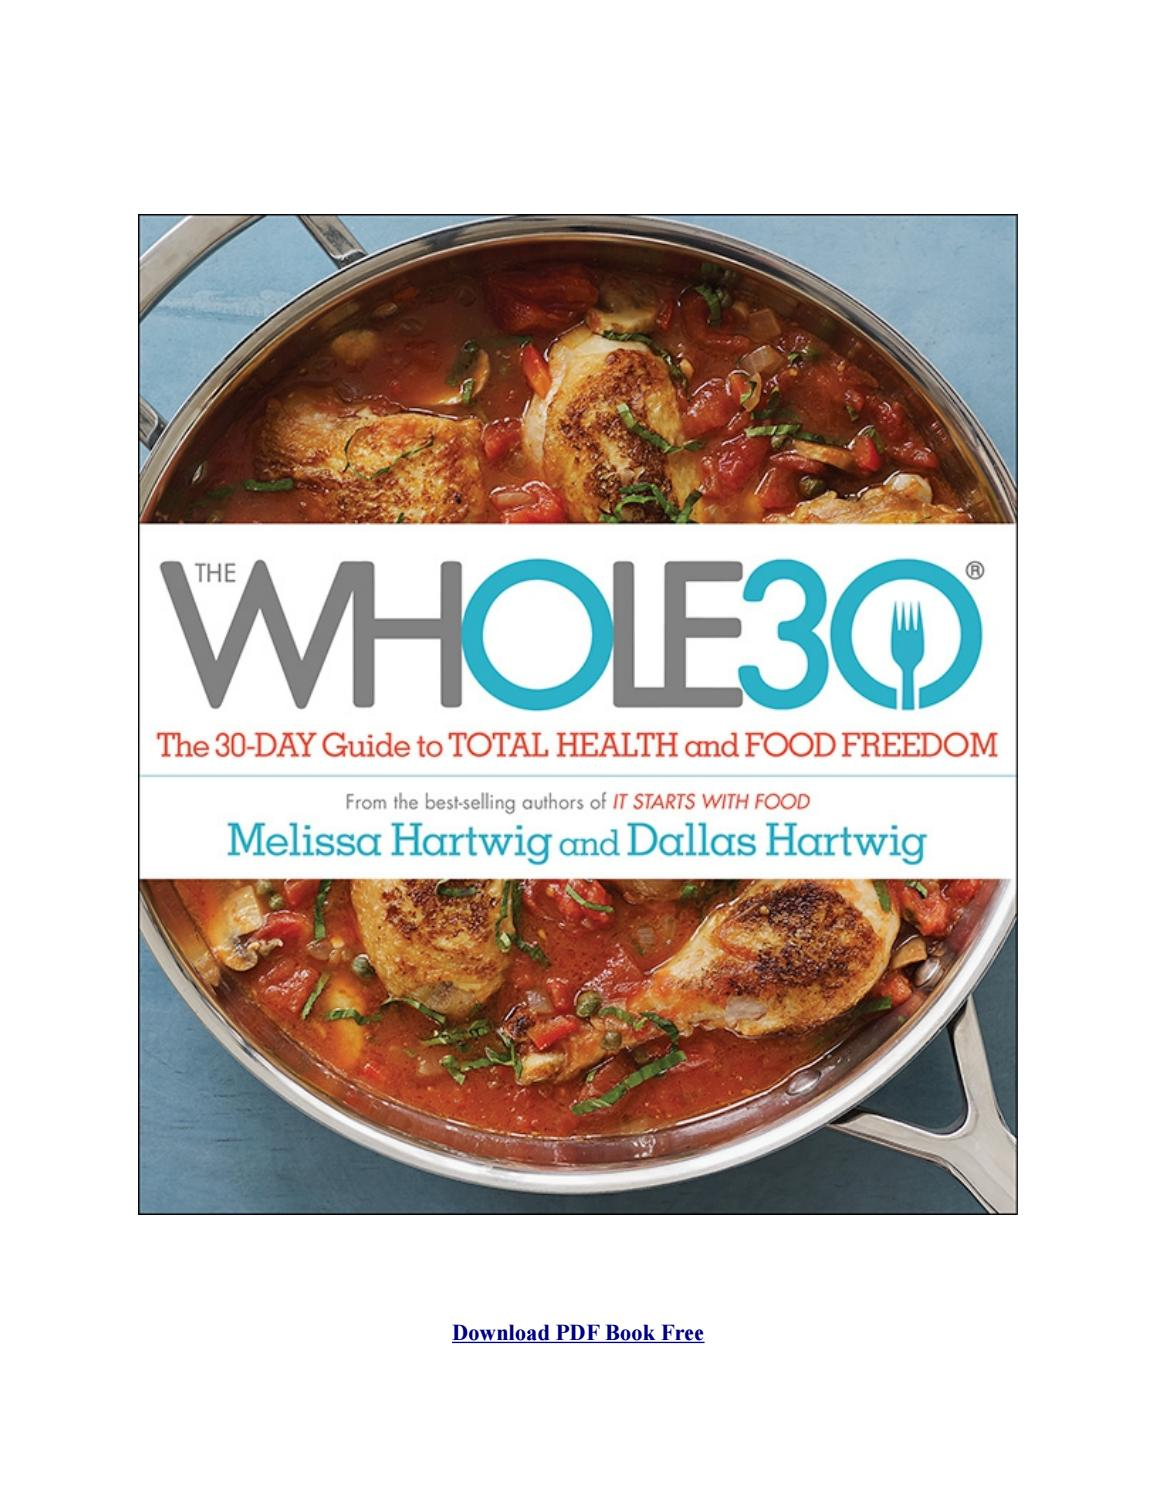 Whole30 Book Pdf Download